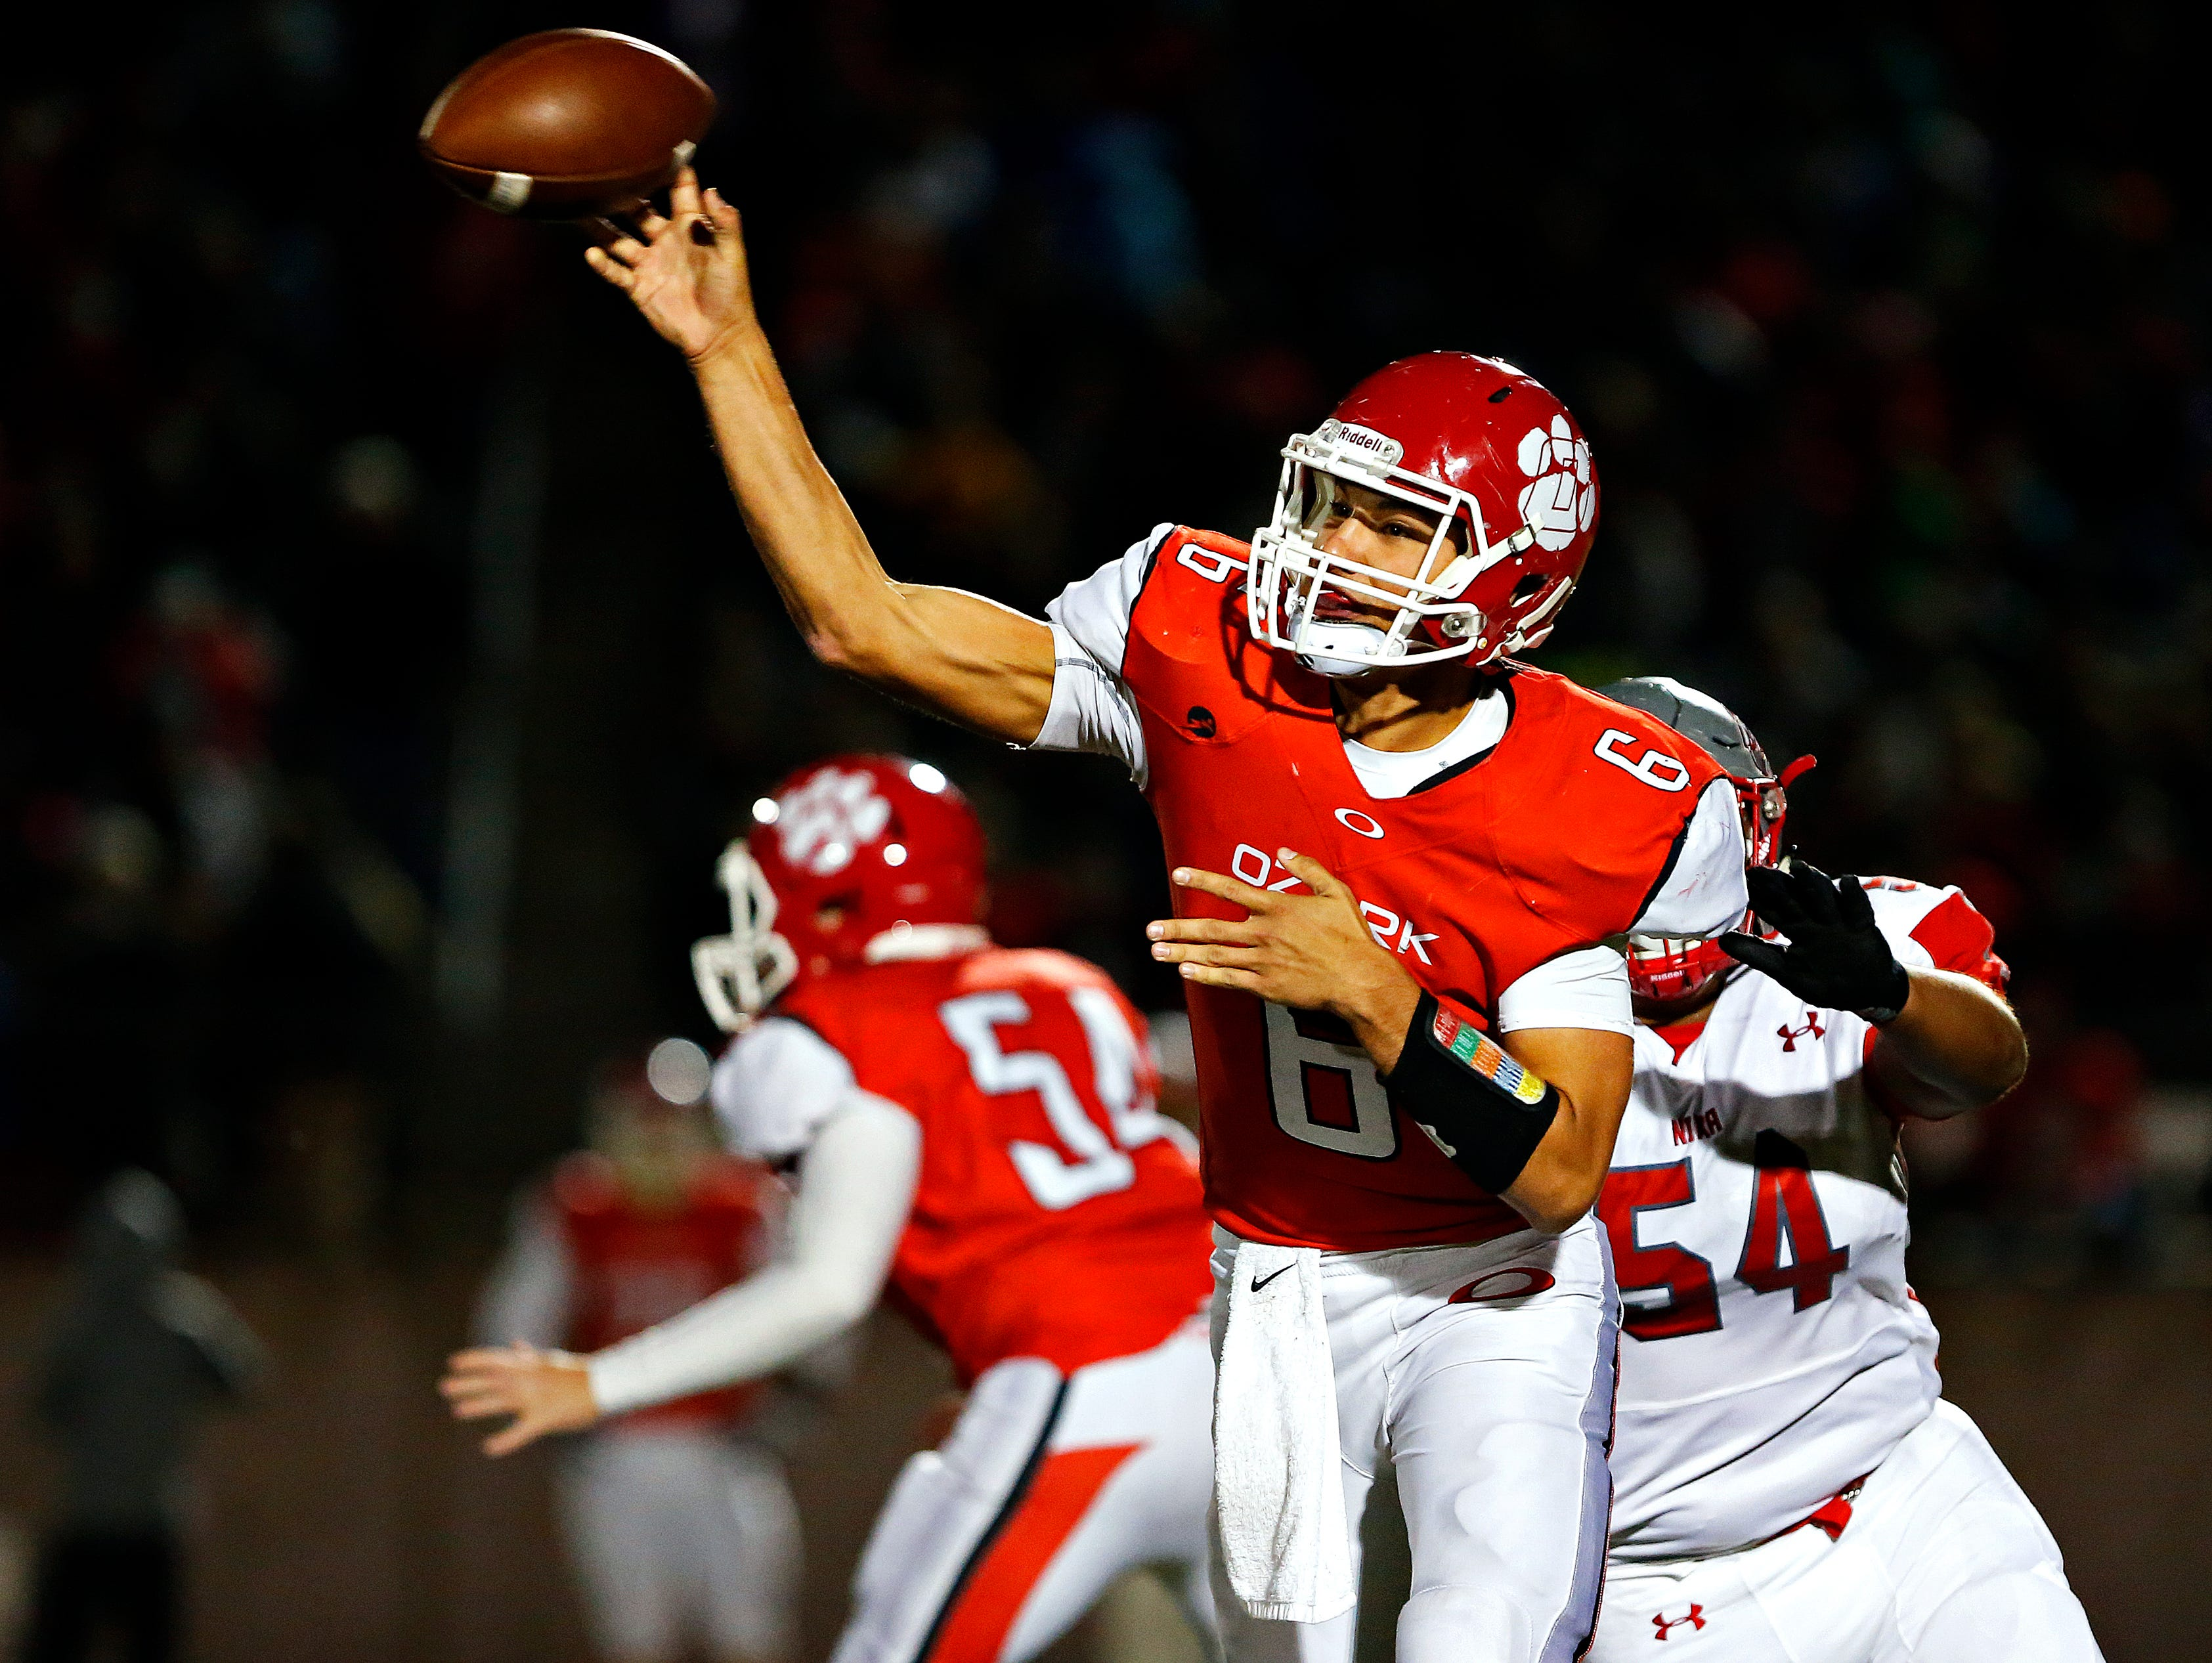 Ozark High School quarterback Jack Hulse (6) throws a pass during second quarter action of the game between Nixa High School and Ozark High School held at Tiger Stadium in Ozark, Mo. on Oct. 7, 2016.